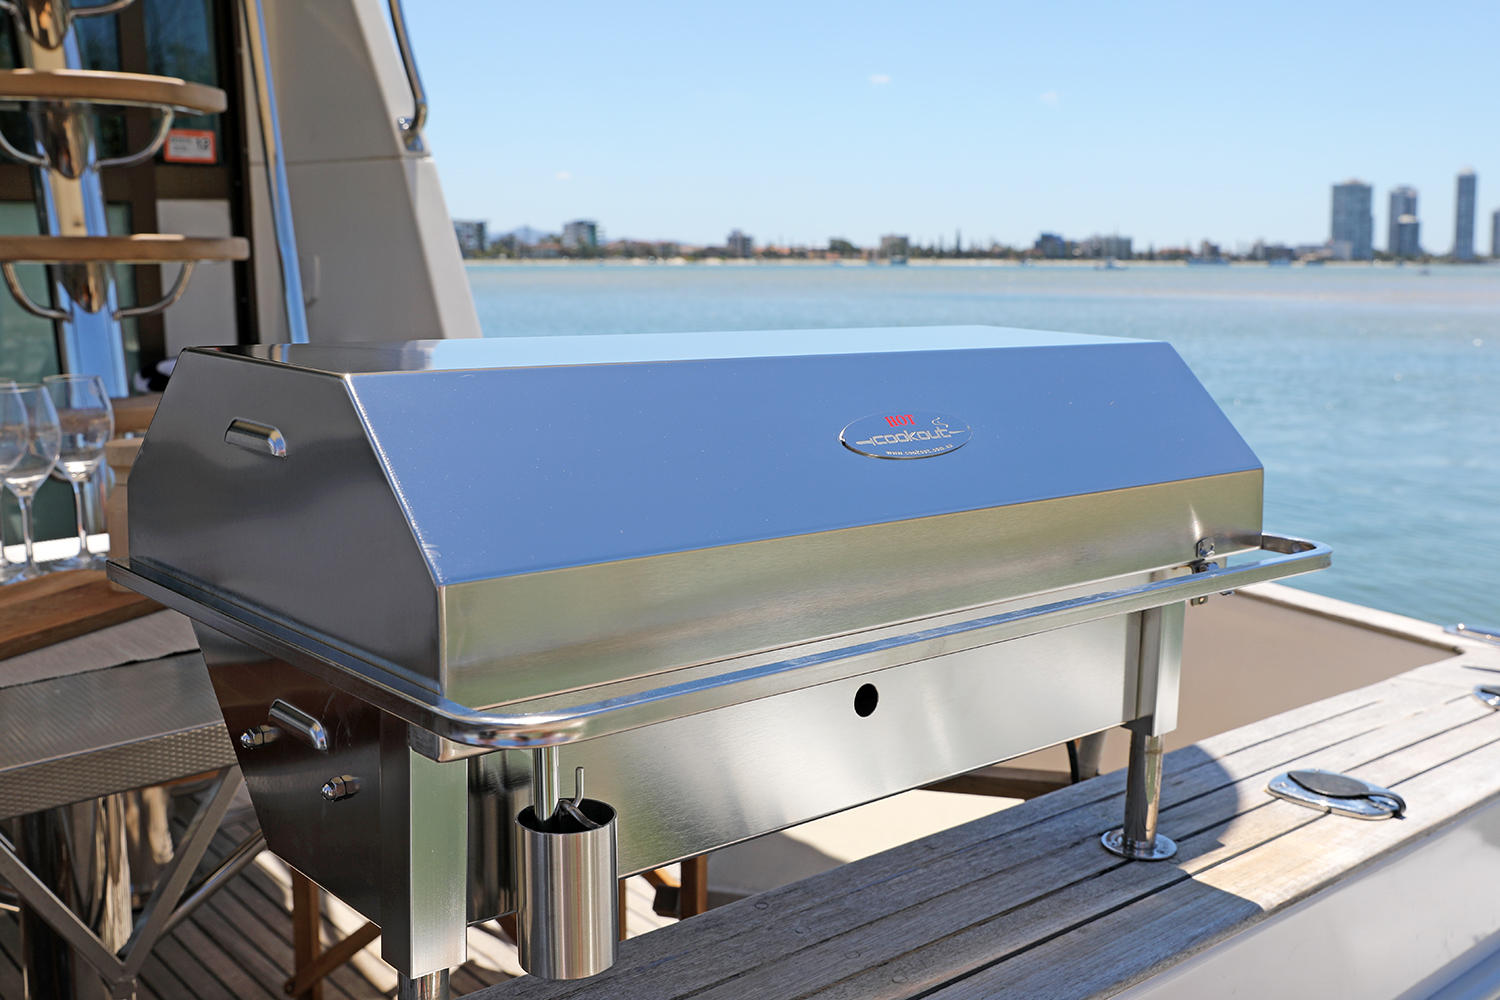 Deluxe Cookout gas stainless BBQ perfect for the boat